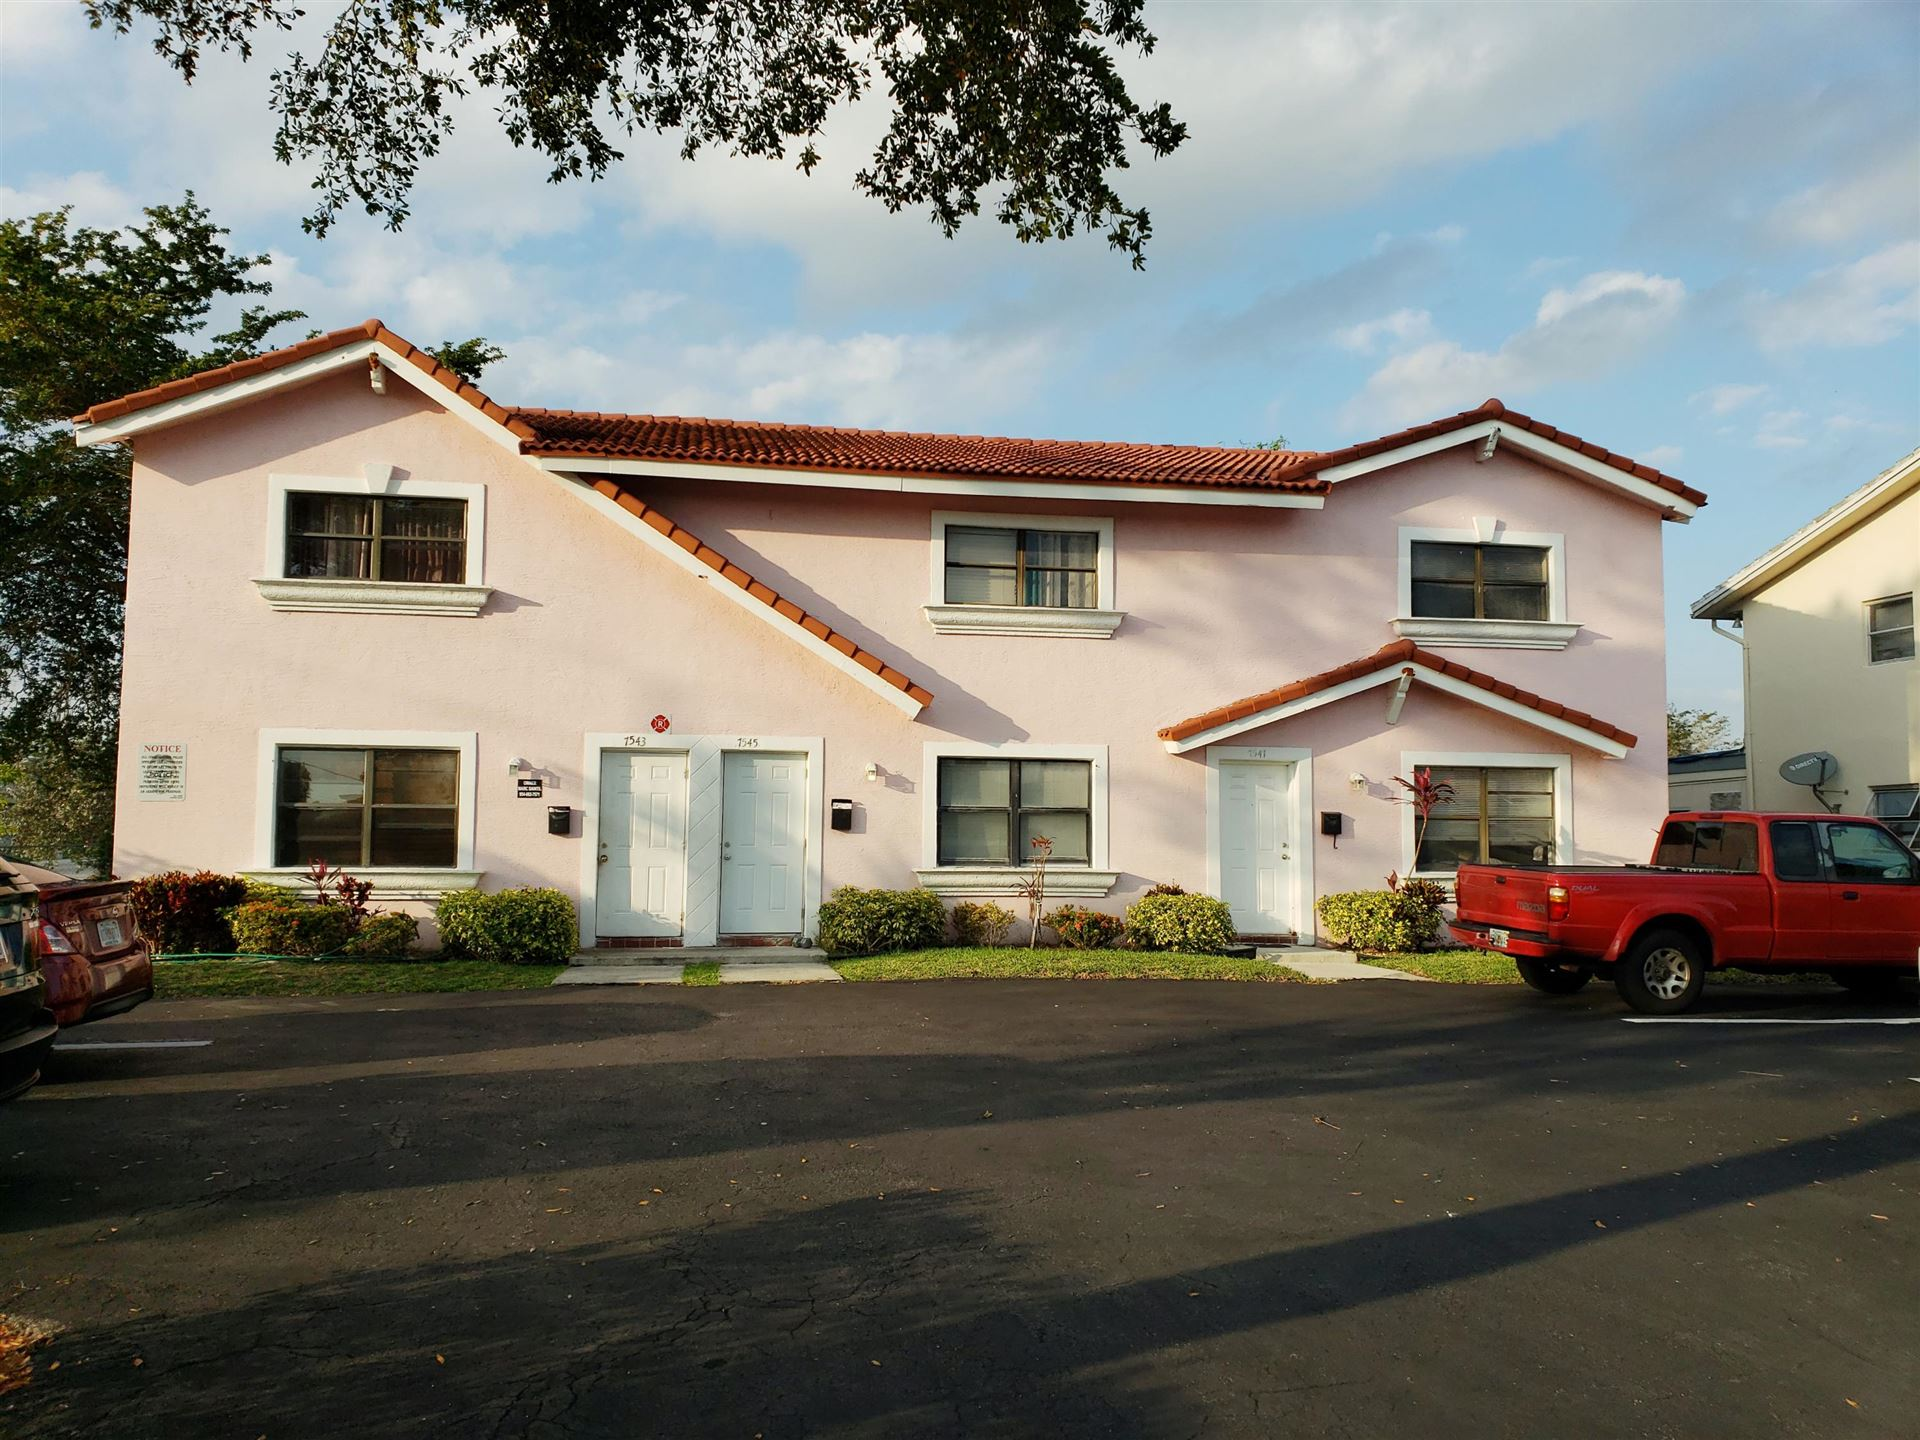 7543 NW 44th Court, Coral Springs, FL 33065 - #: RX-10636129